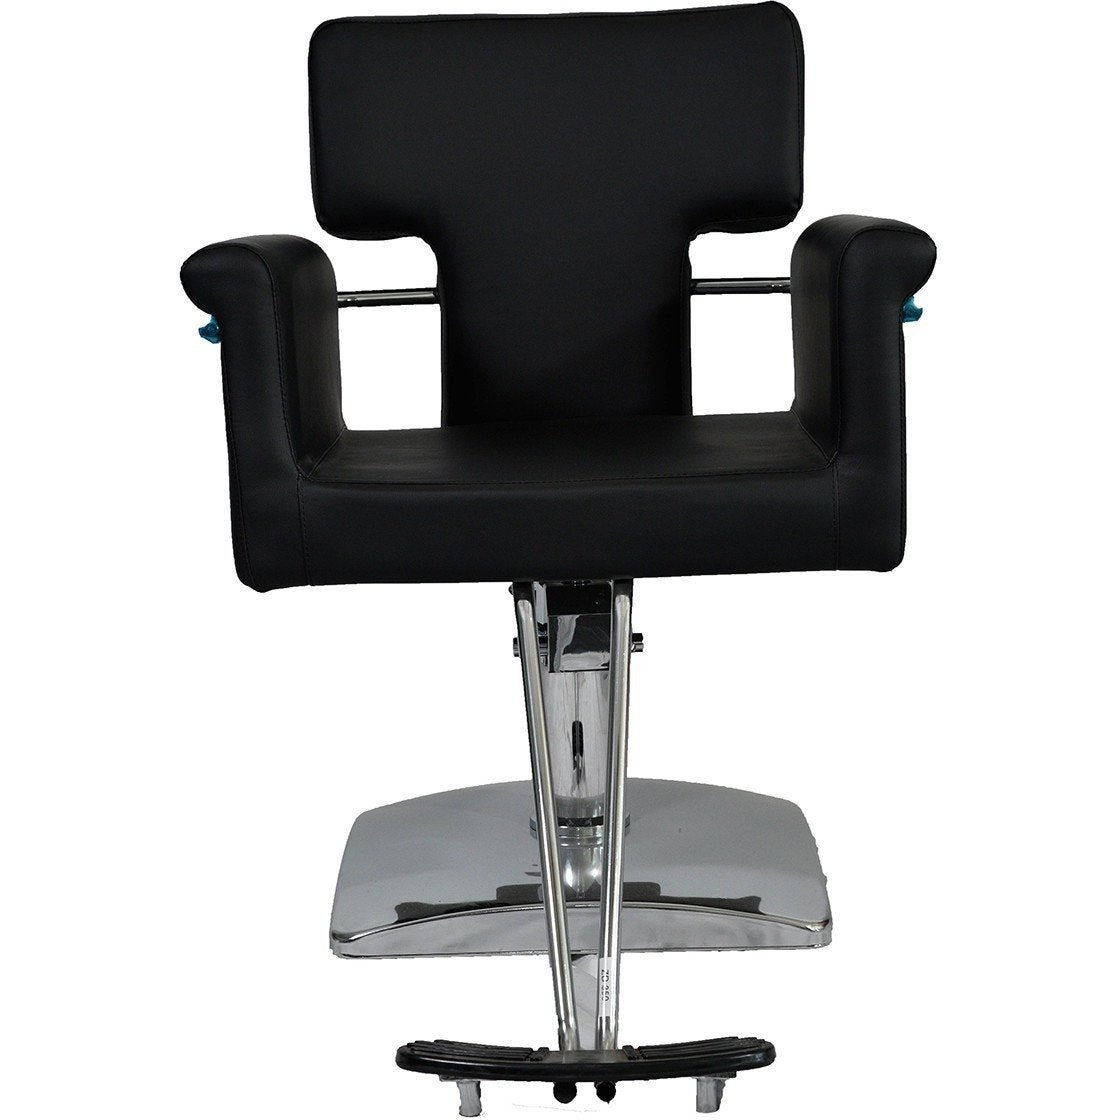 Essential Spa Equipment - Styling Chair #3